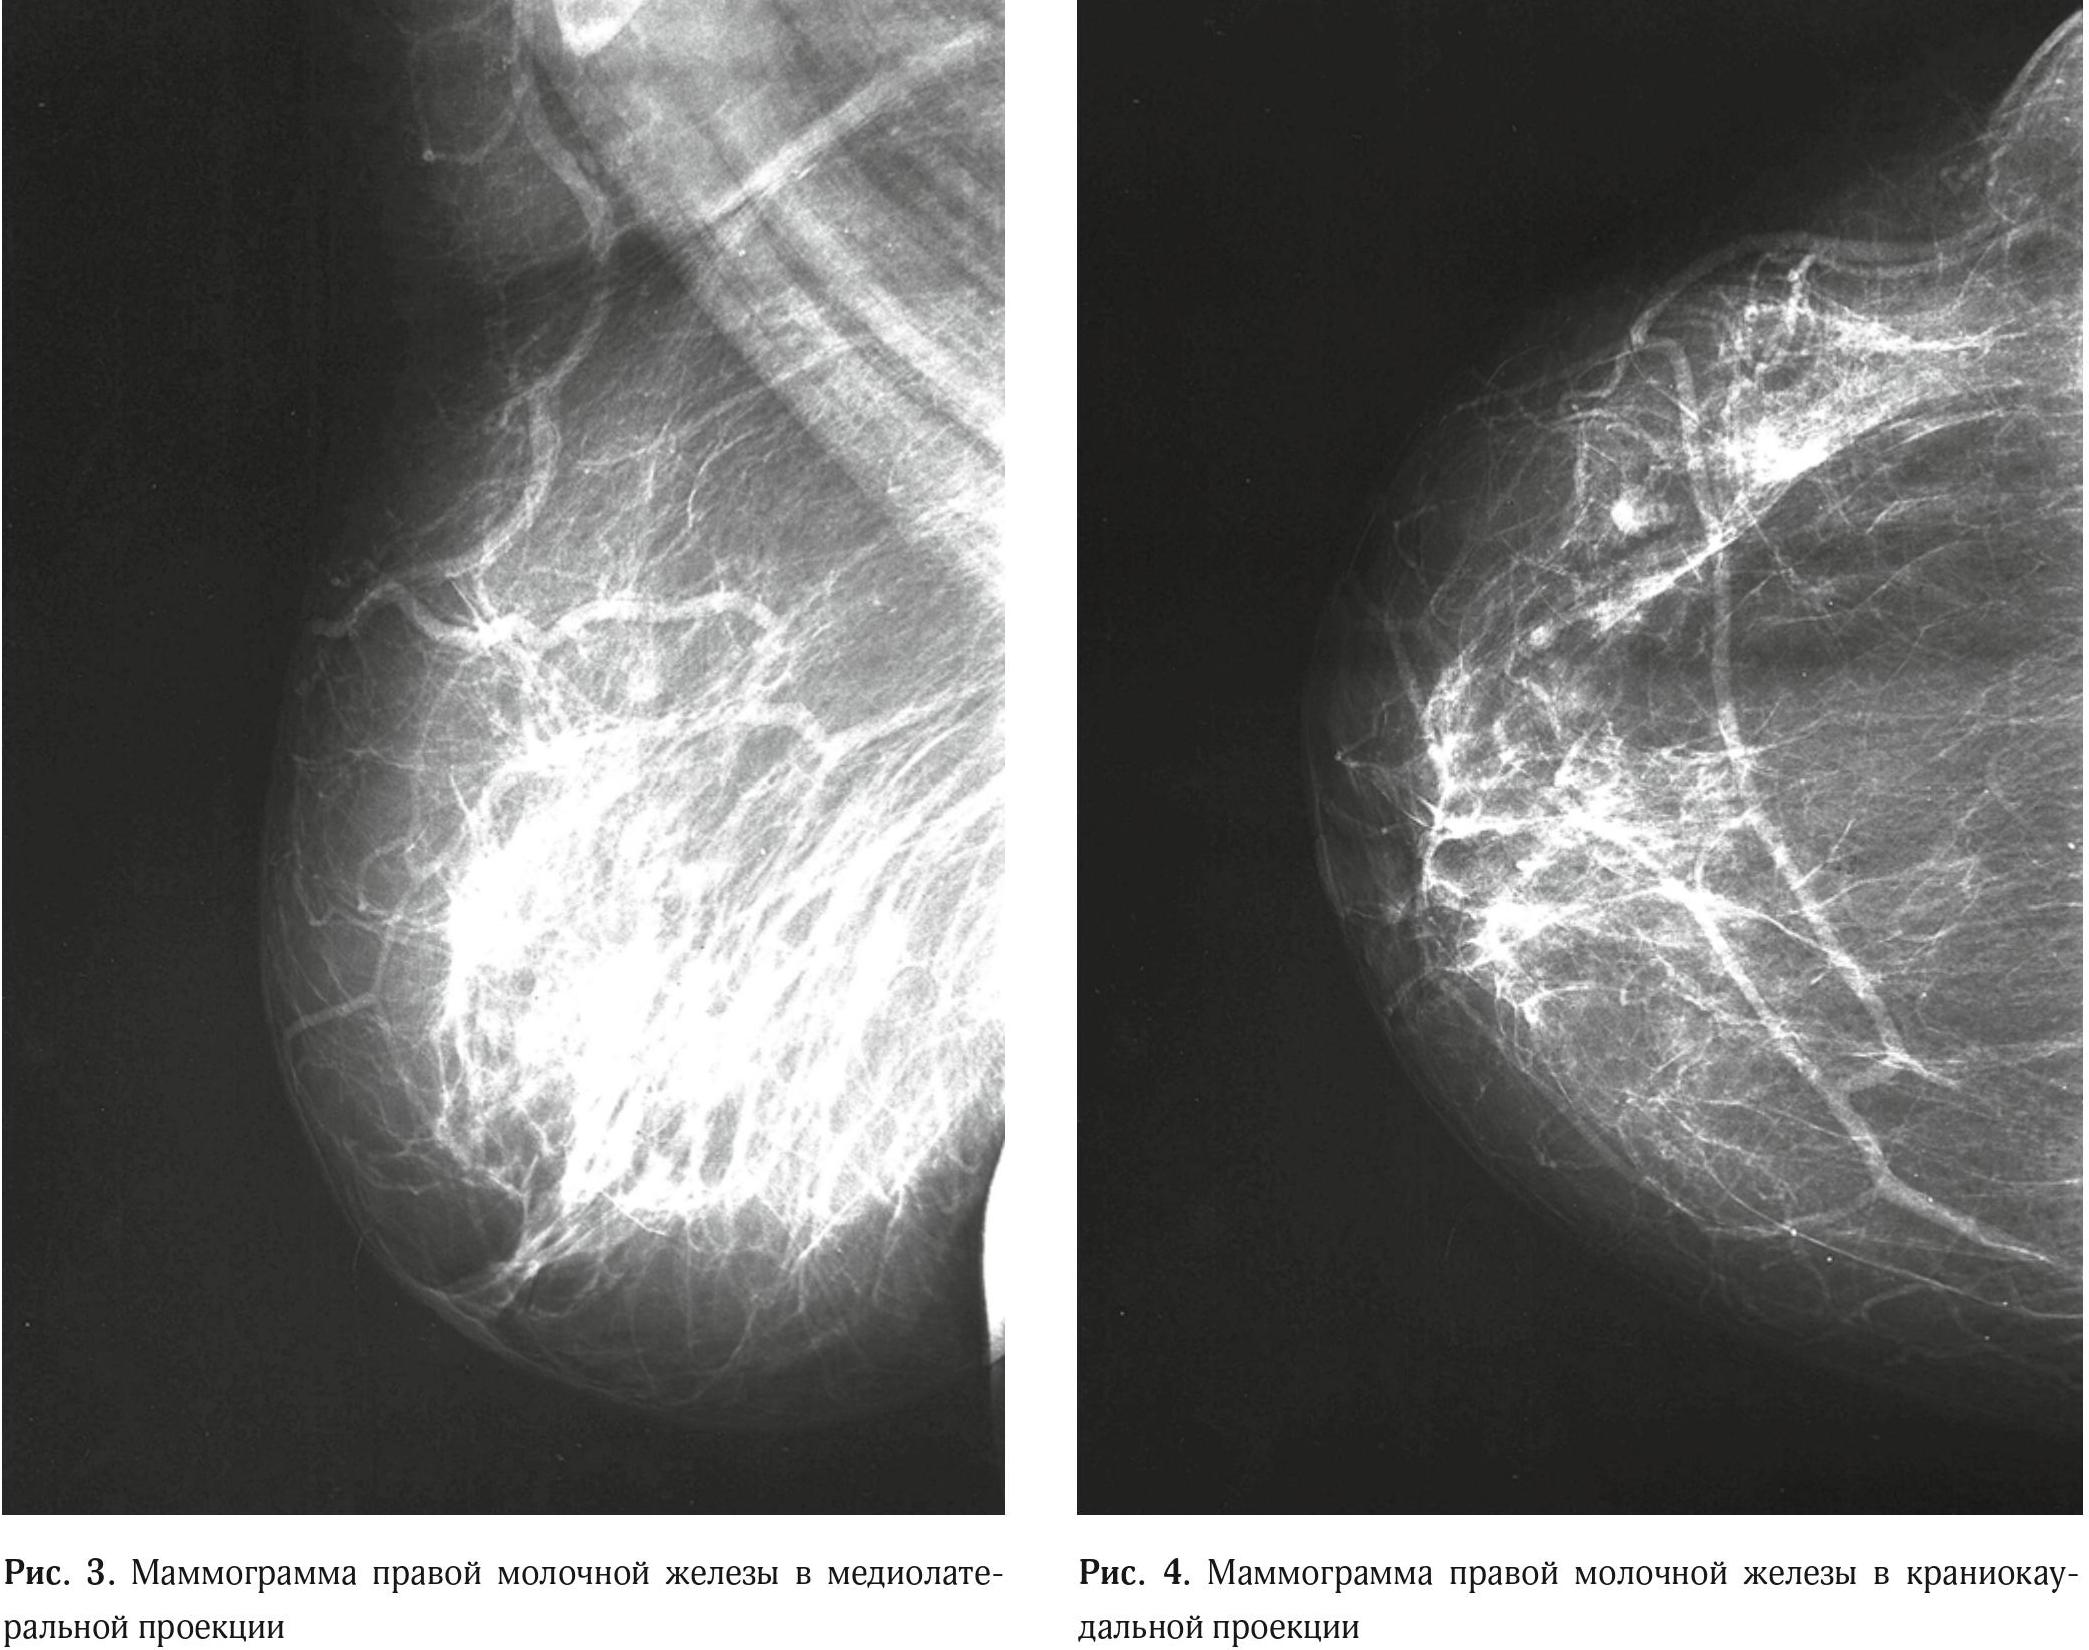 Clinical case granular cell tumor of breast 2